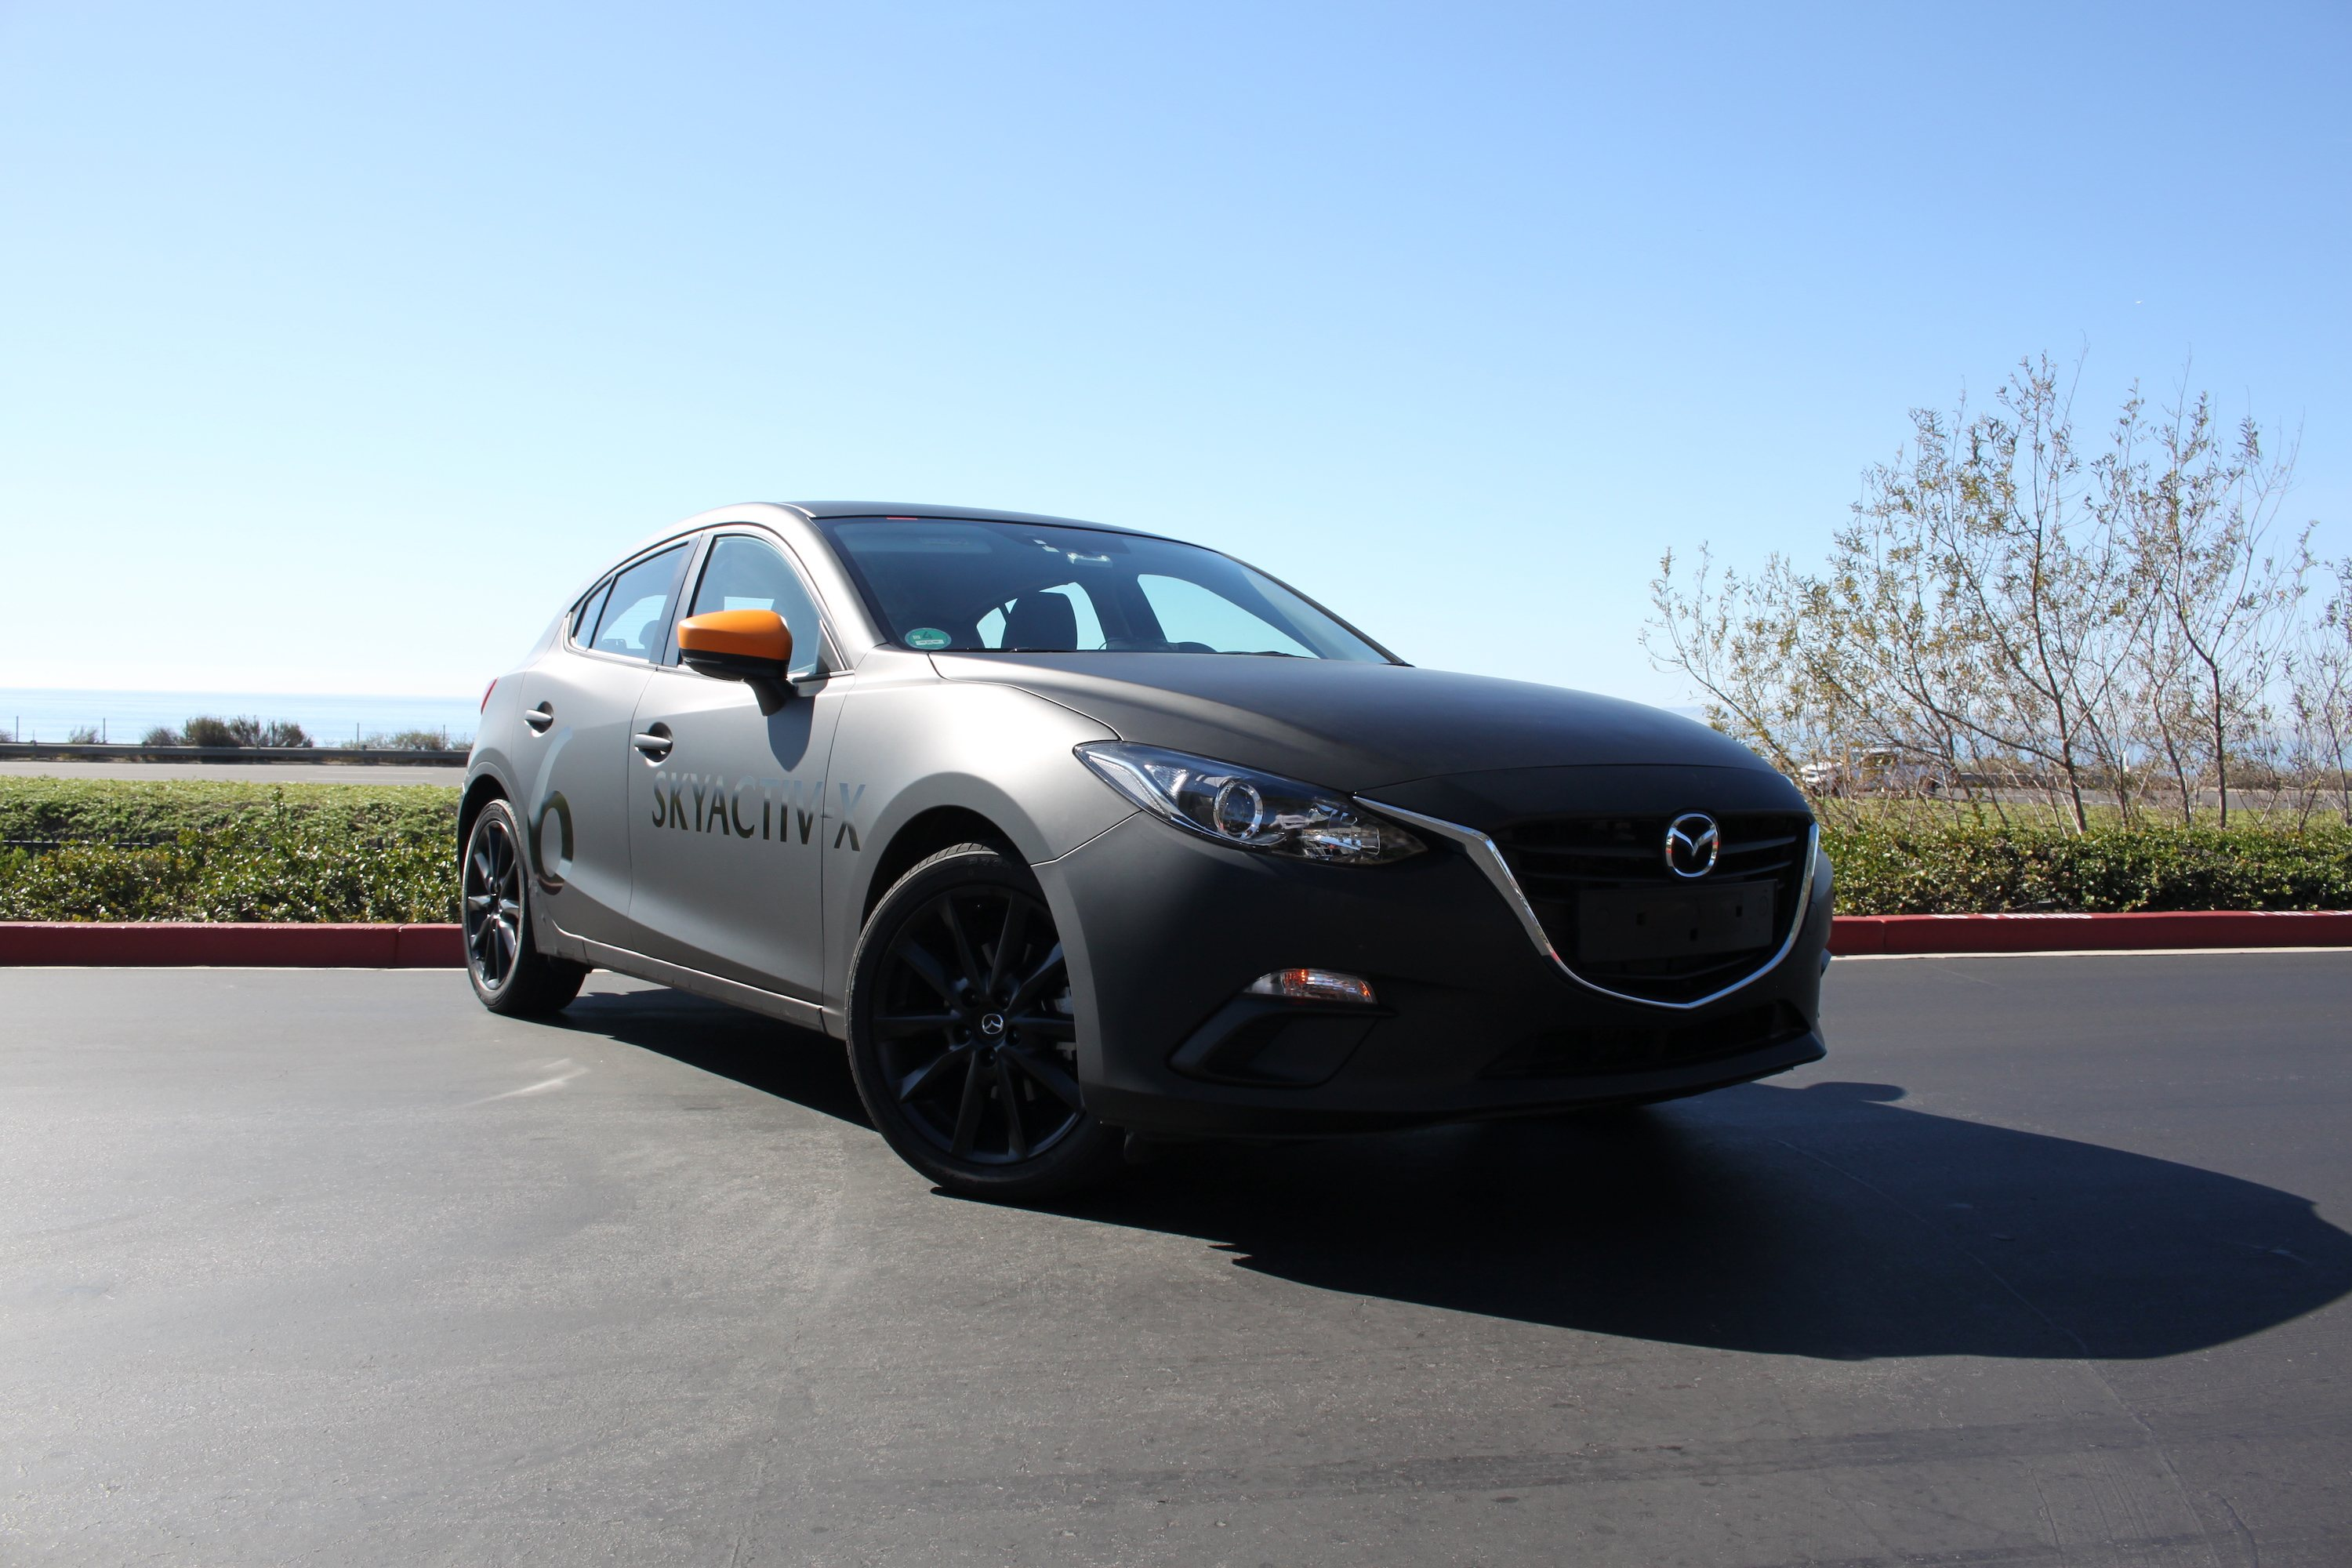 skyactiv x is mazda 39 s secret weapon for fuel economy news. Black Bedroom Furniture Sets. Home Design Ideas